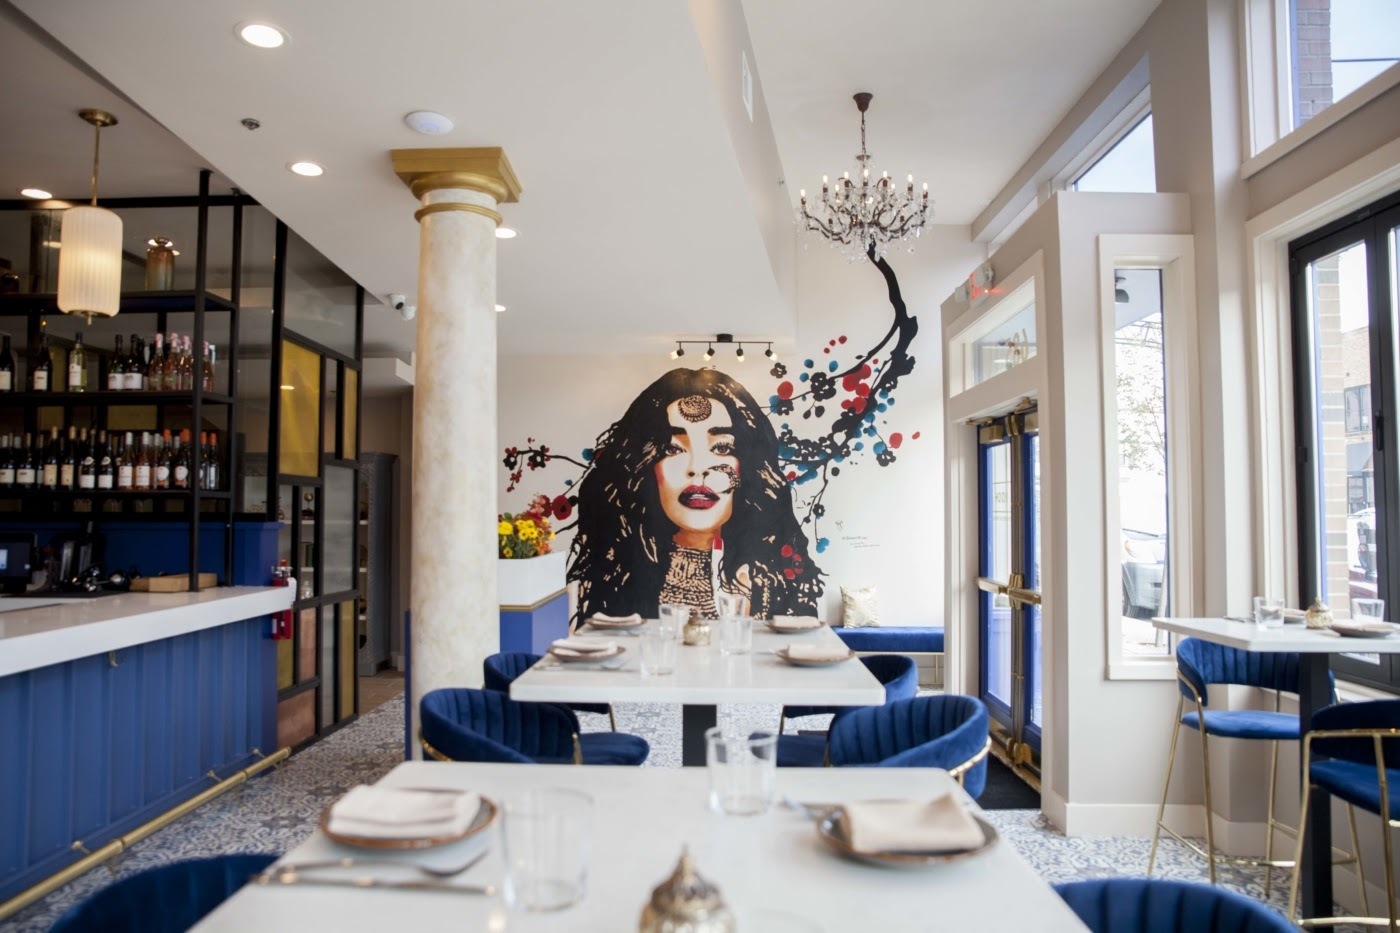 Rooh Winebar interior with a blue and gold motif. On the back wall is a mural of an Indian Woman portrait and floral design.